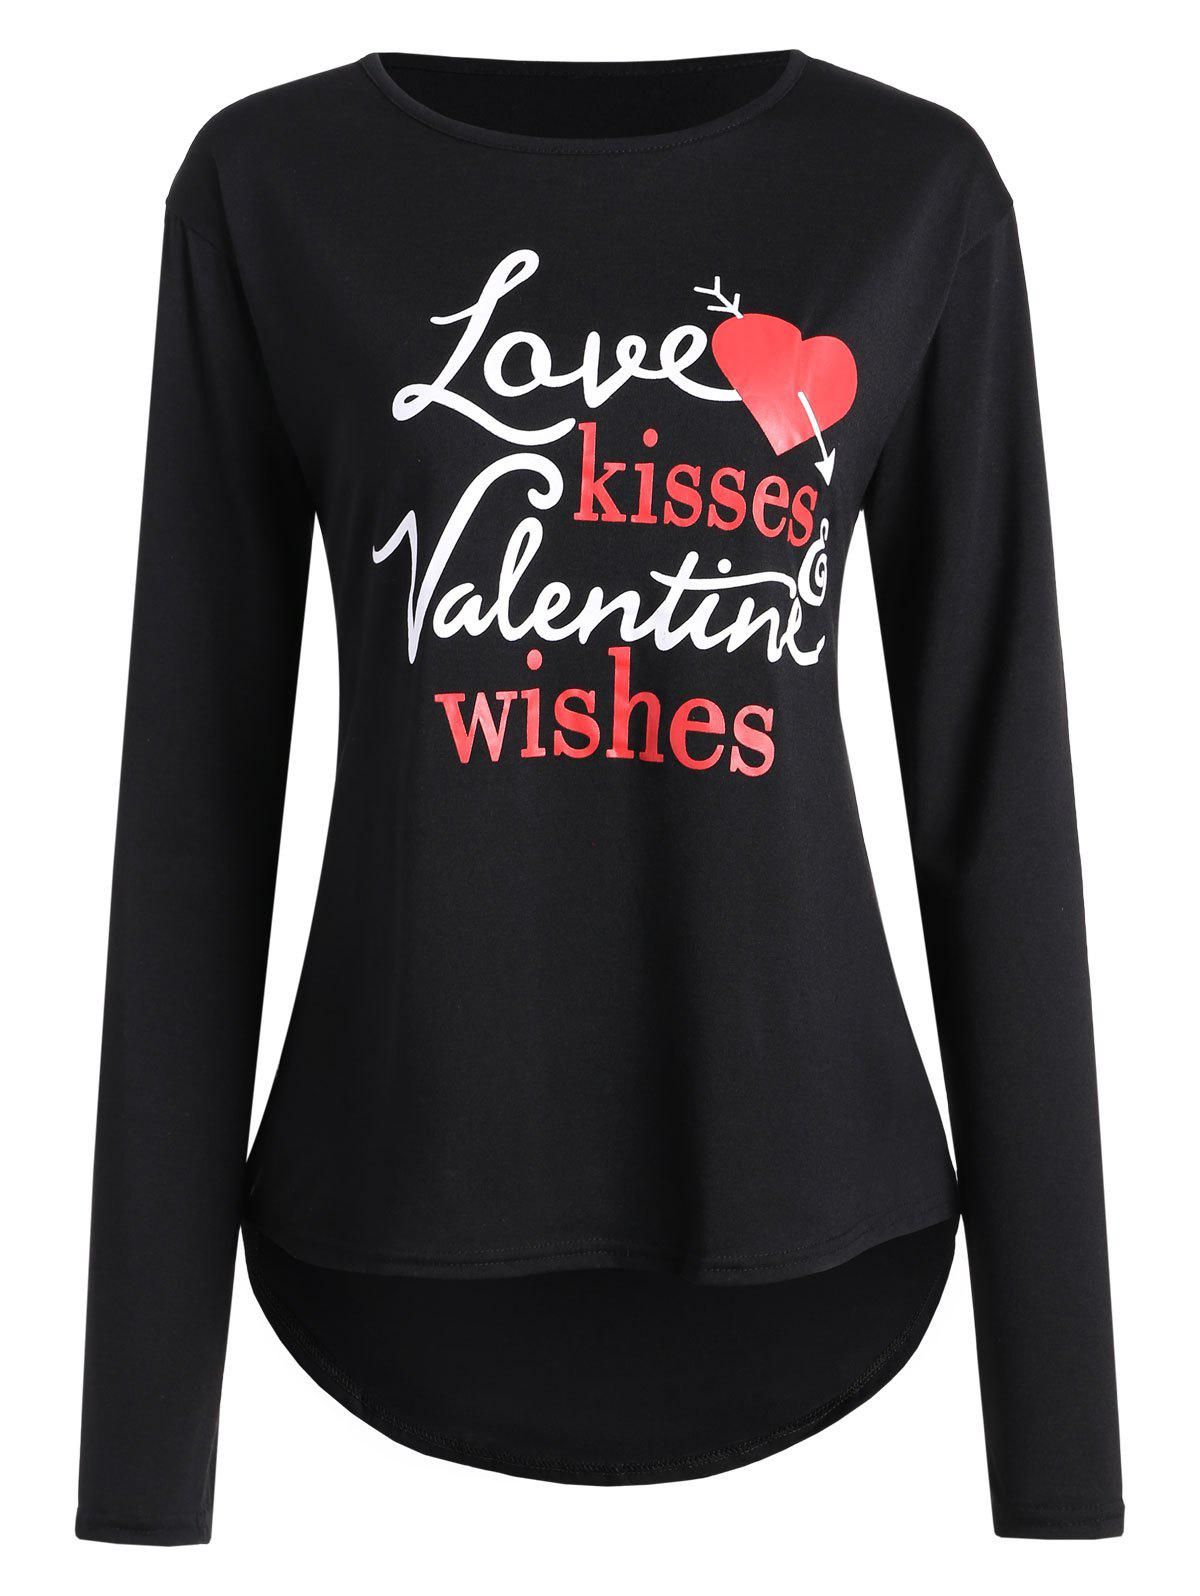 Chic Valentine Love Heart Print High Low T-shirt